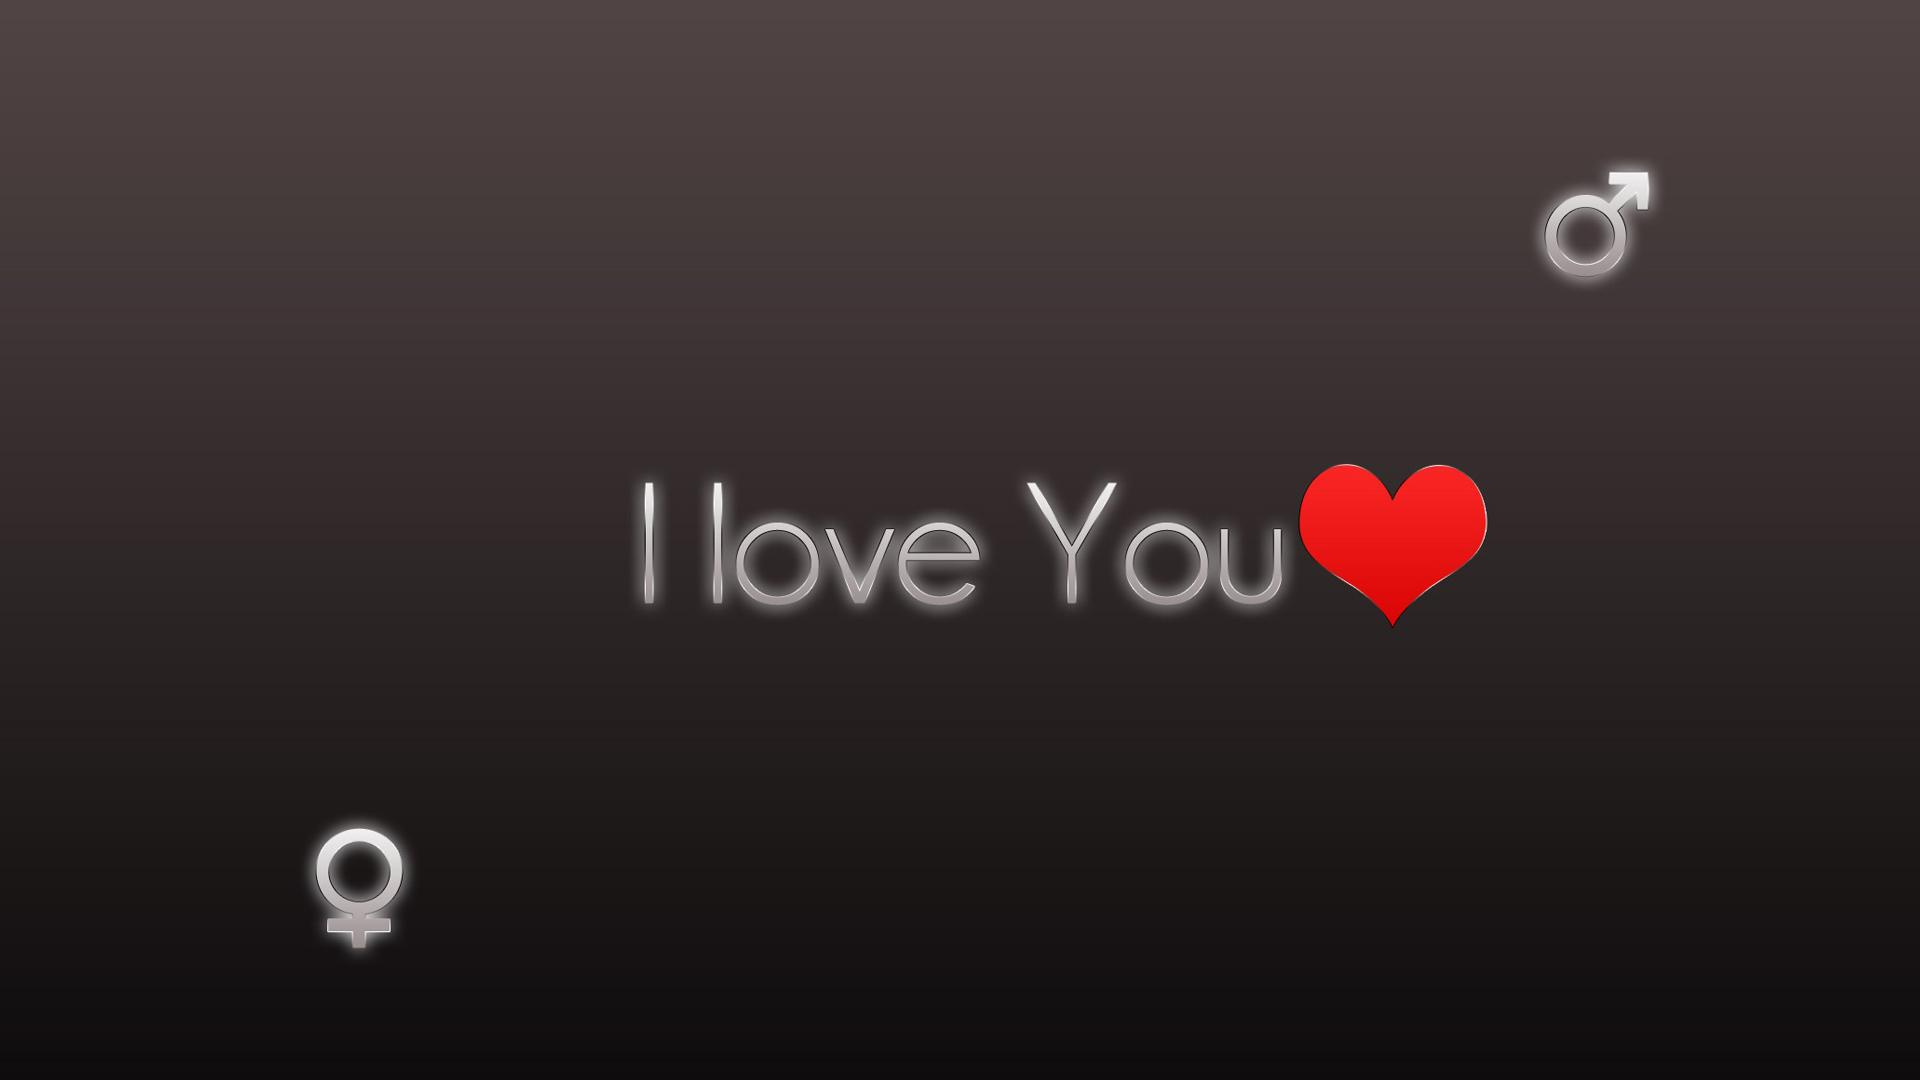 Superior I Love You Best Quotes HD Wallpaper